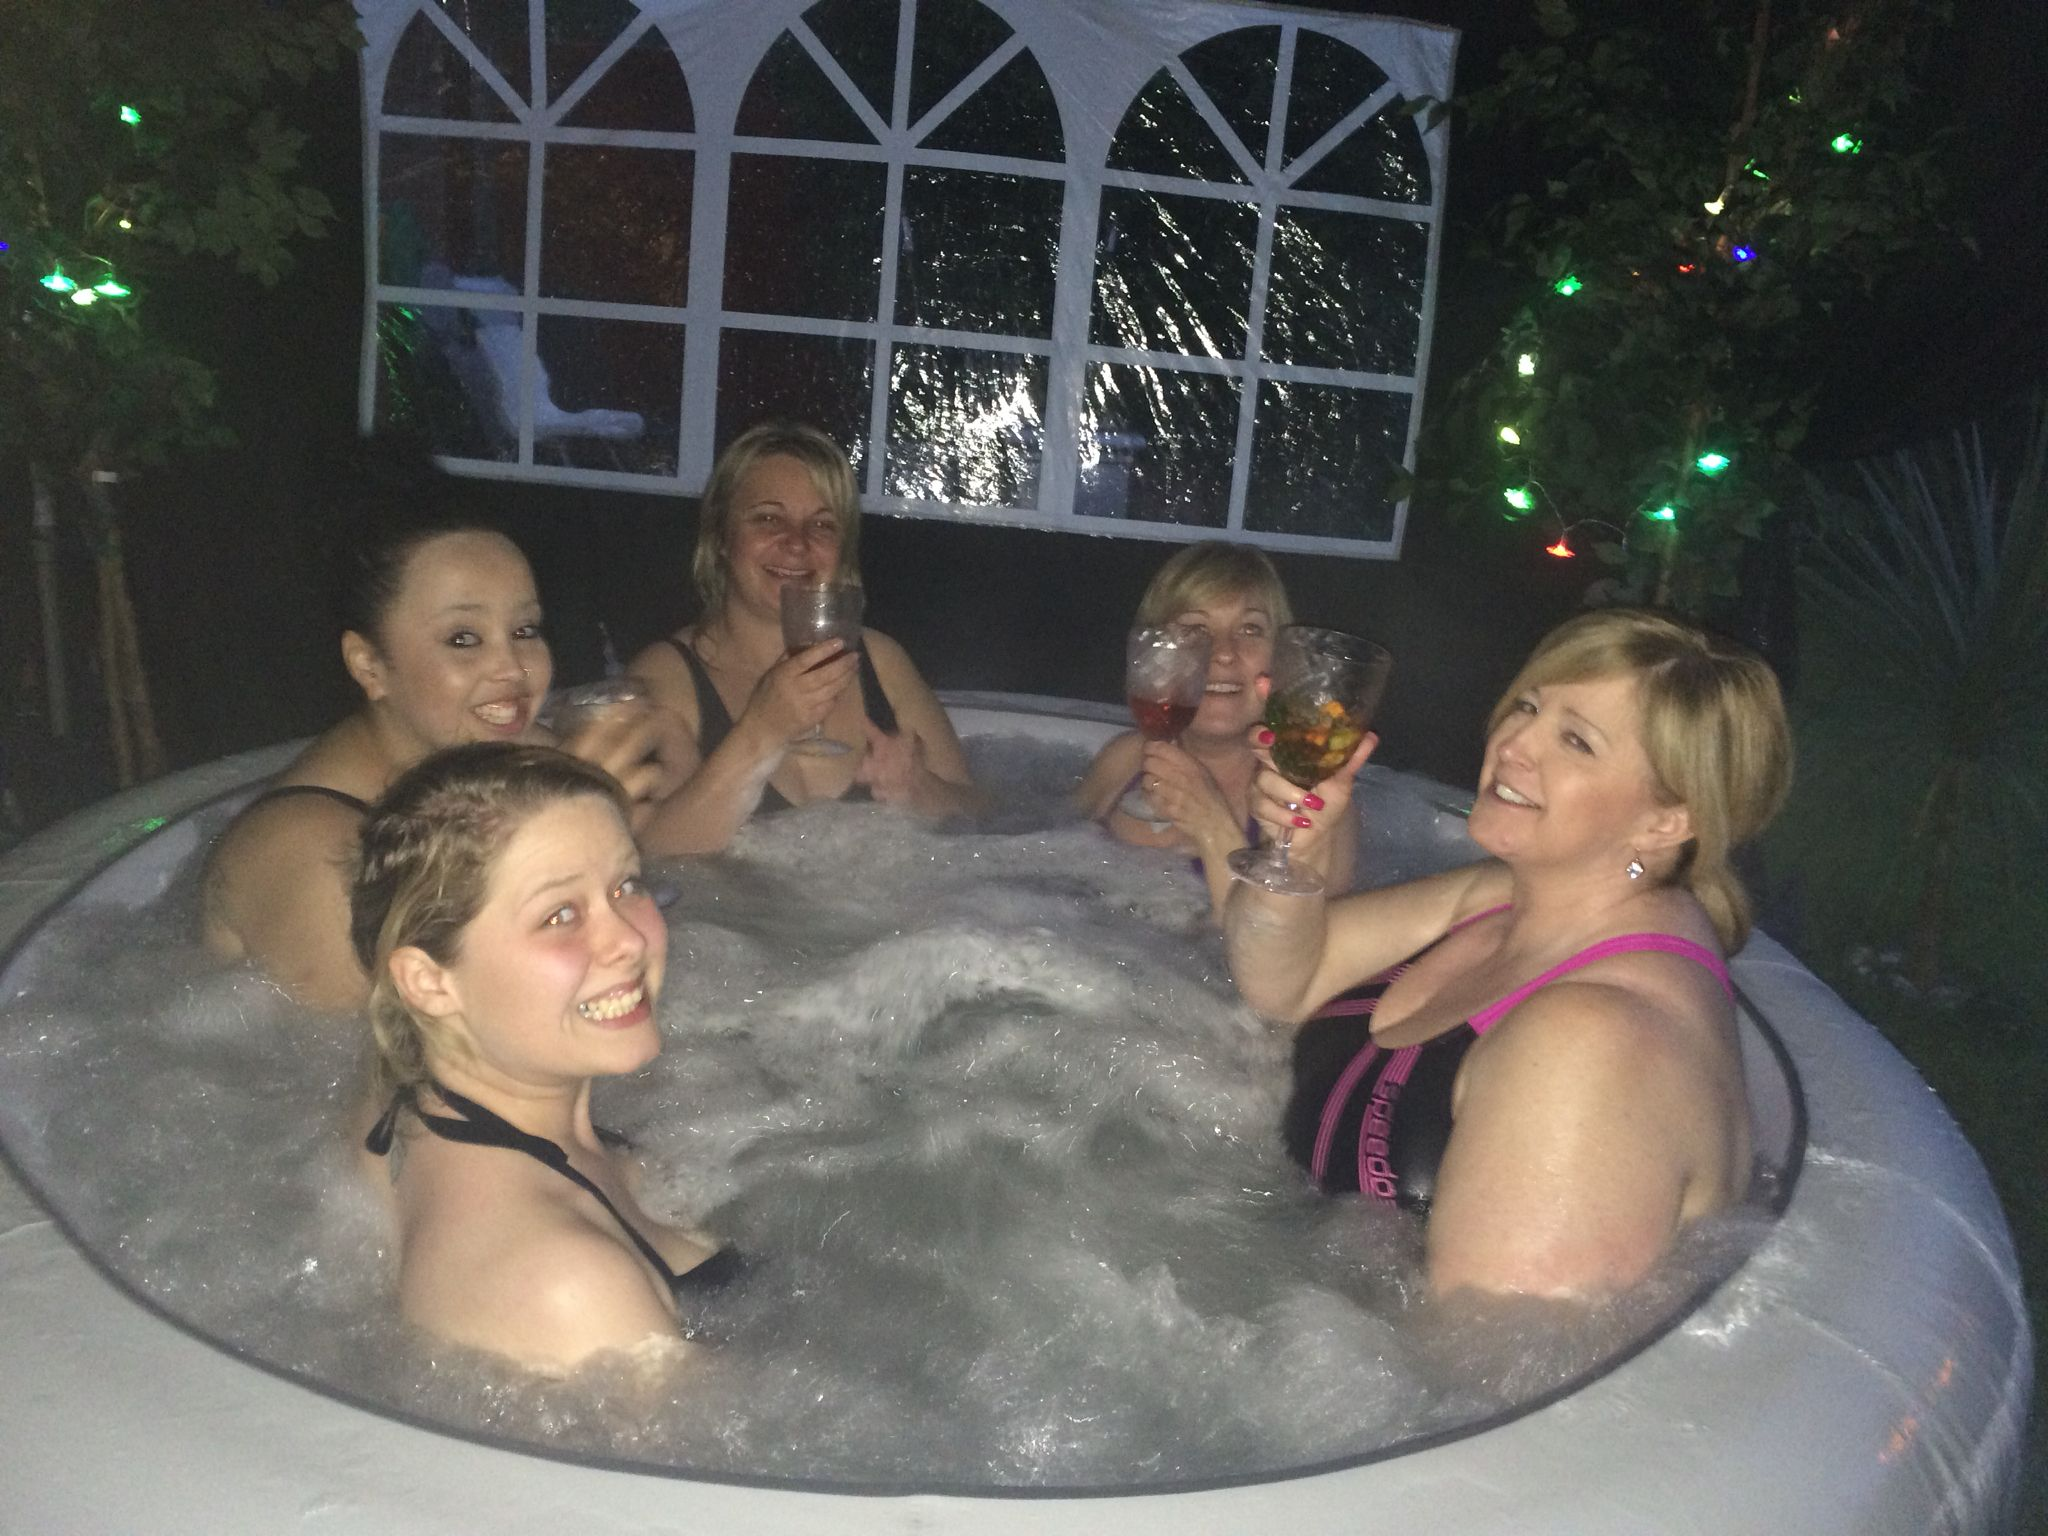 Sexy girls in jacuzzi-6856